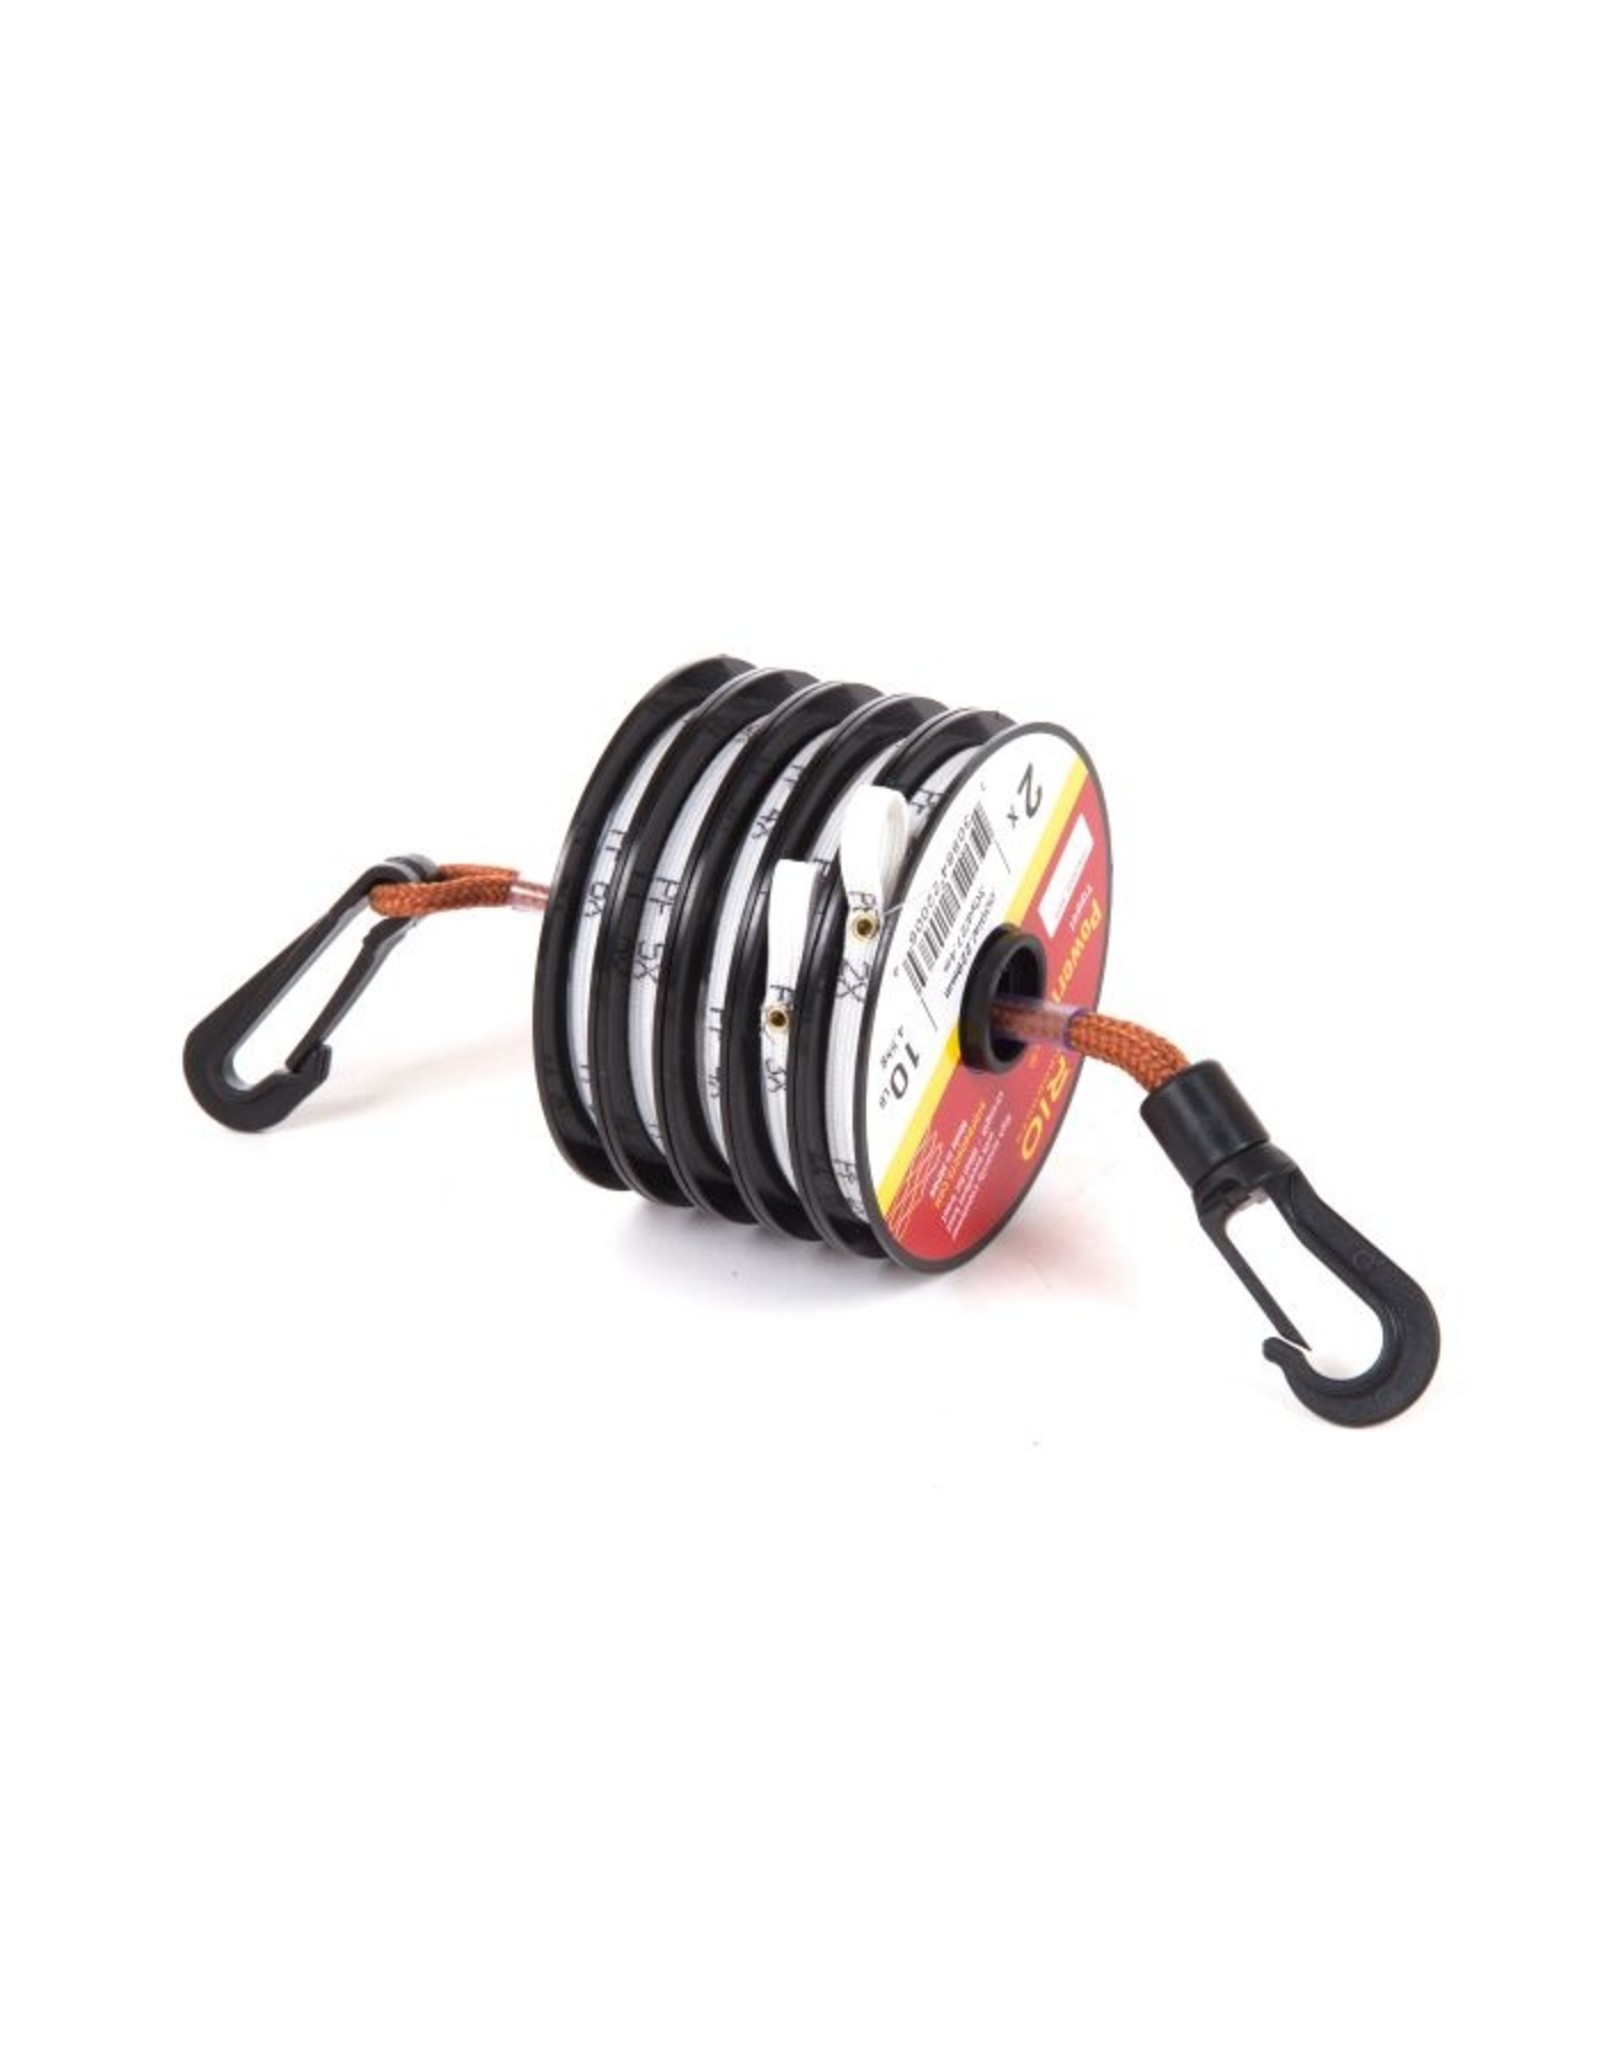 Fishpond Fishpond - Tippet Cord